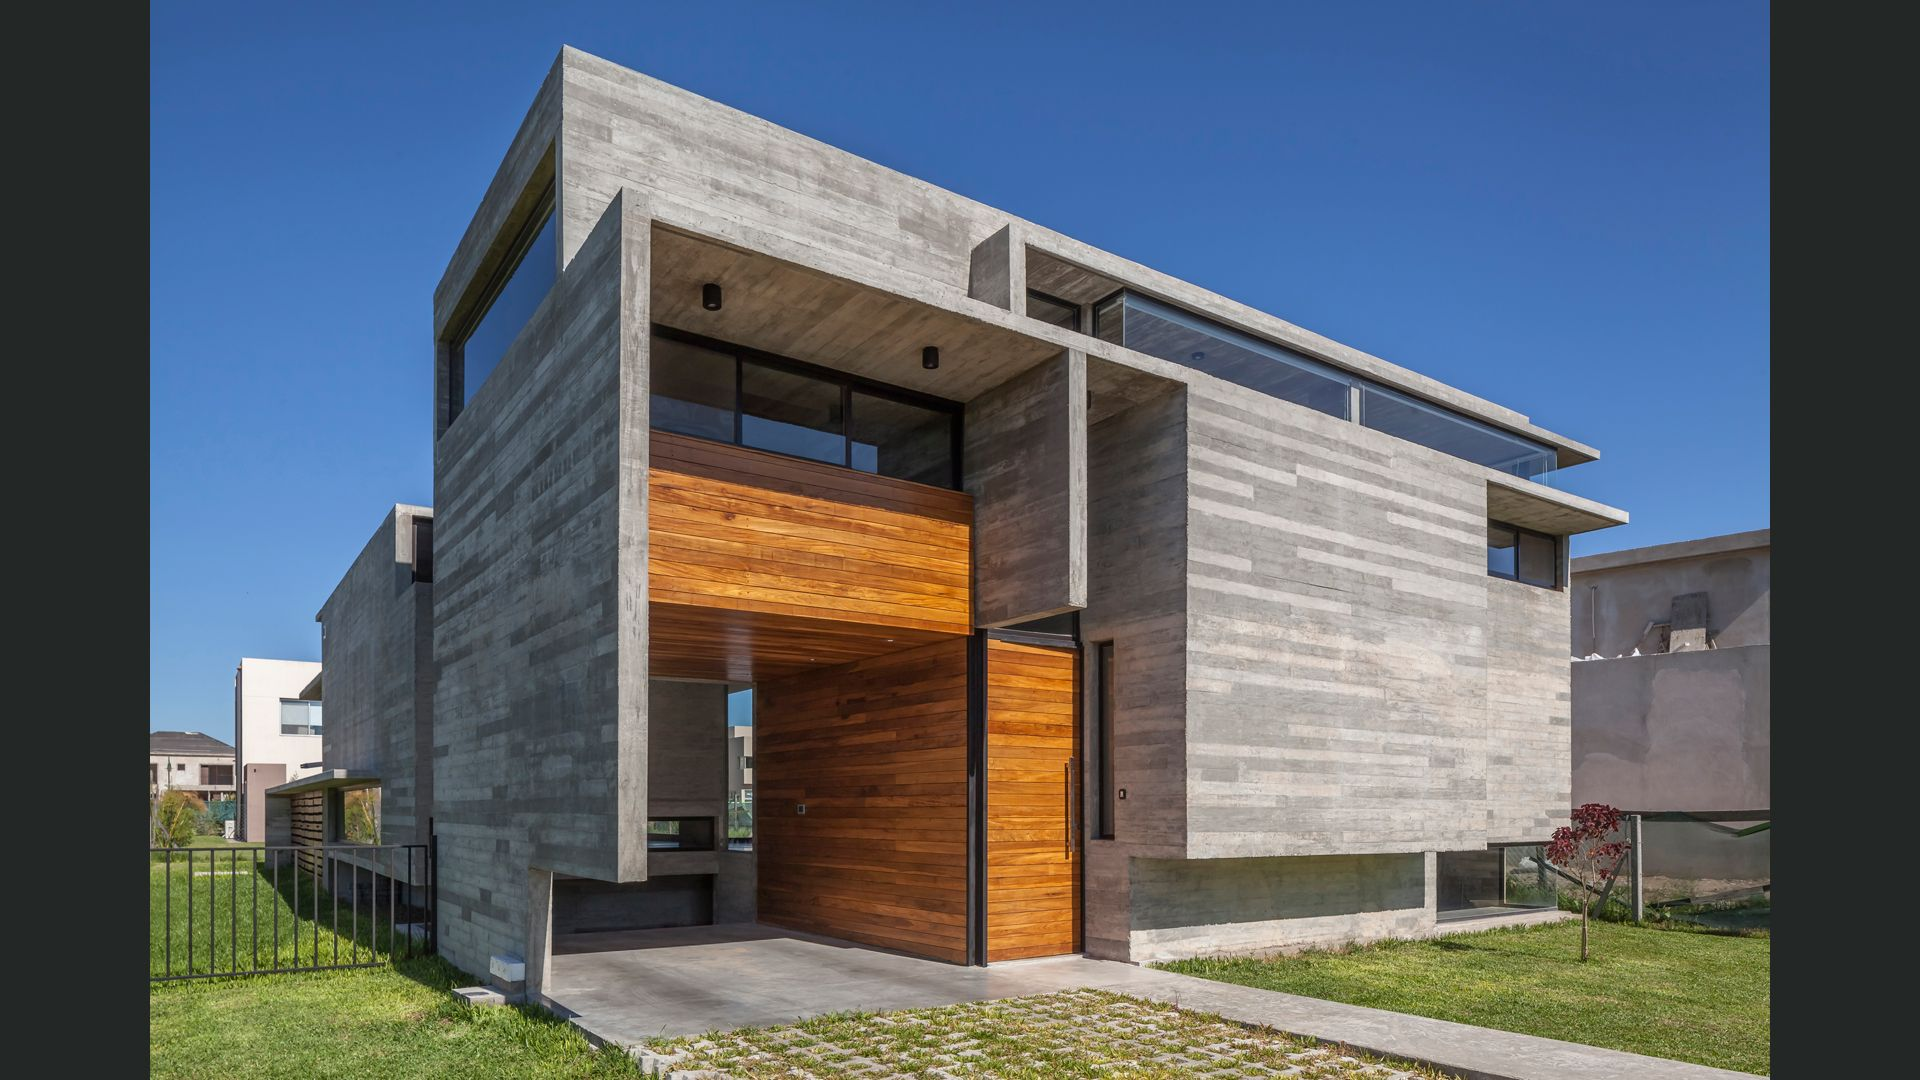 Modern Concrete Home Located In Los Troncos District Berazategui Buenos Aires Argentina Architect Besonias Almei Architecture Brutalist Architecture House